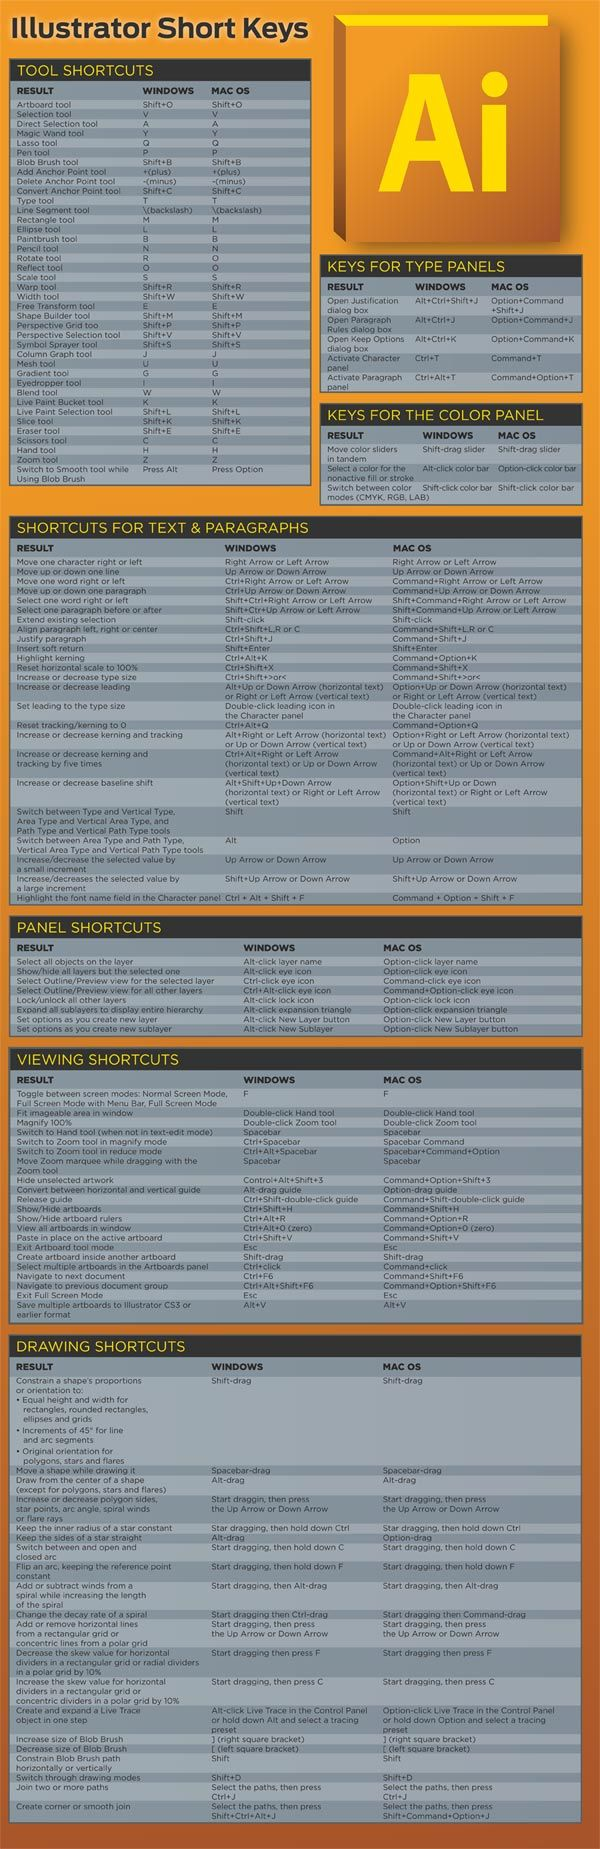 Now you can download adobe cs5 Cheat sheet infographics for illustrator. Infographics are popular now and use a visual treatment to feature the points and flow of information great